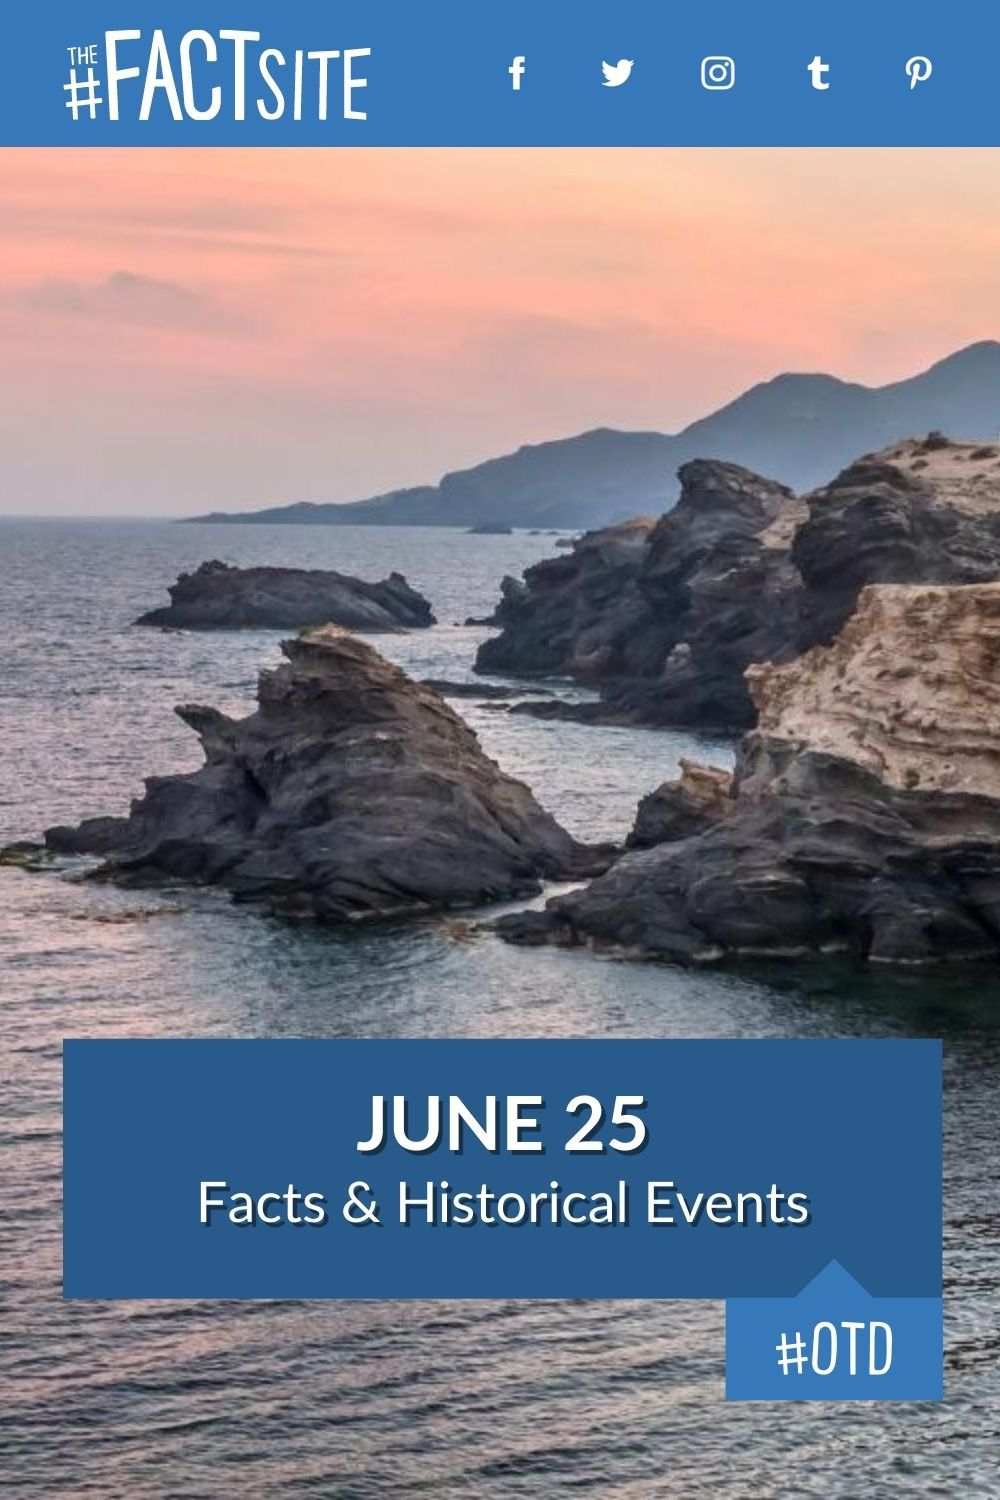 Facts & Historic Events That Happened on June 25